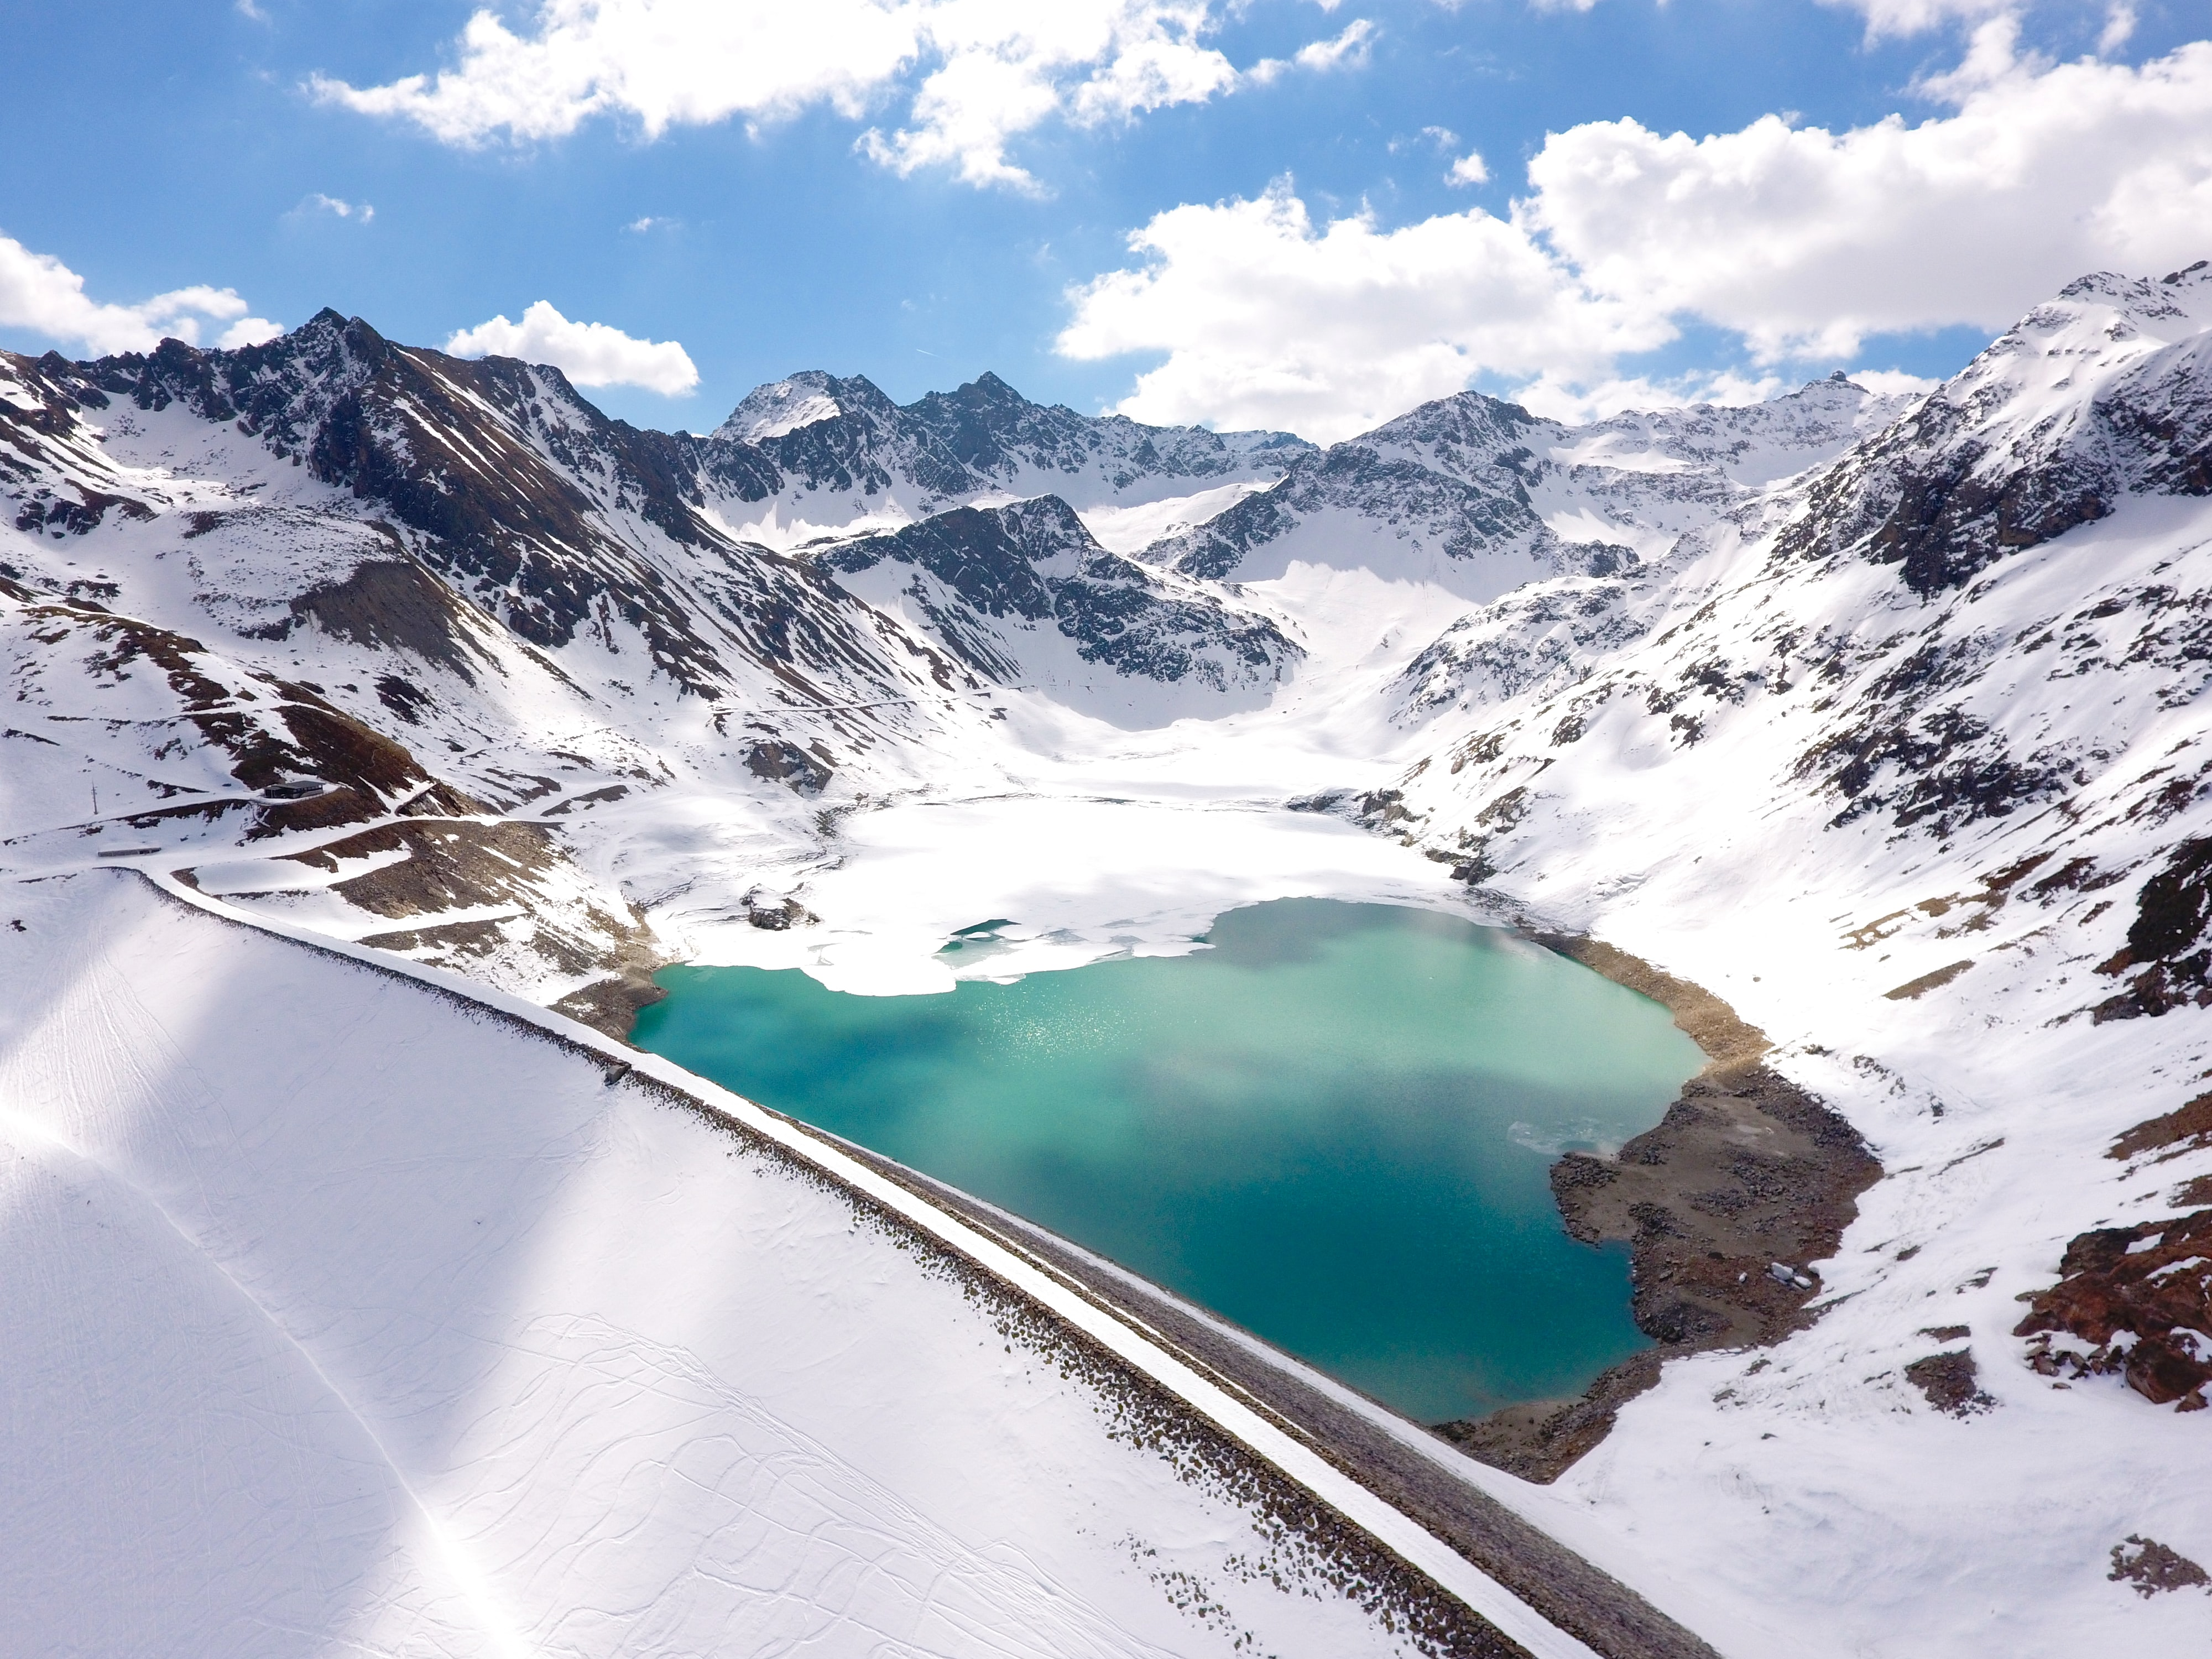 Snowy mountains surround a green lake on a sunny day